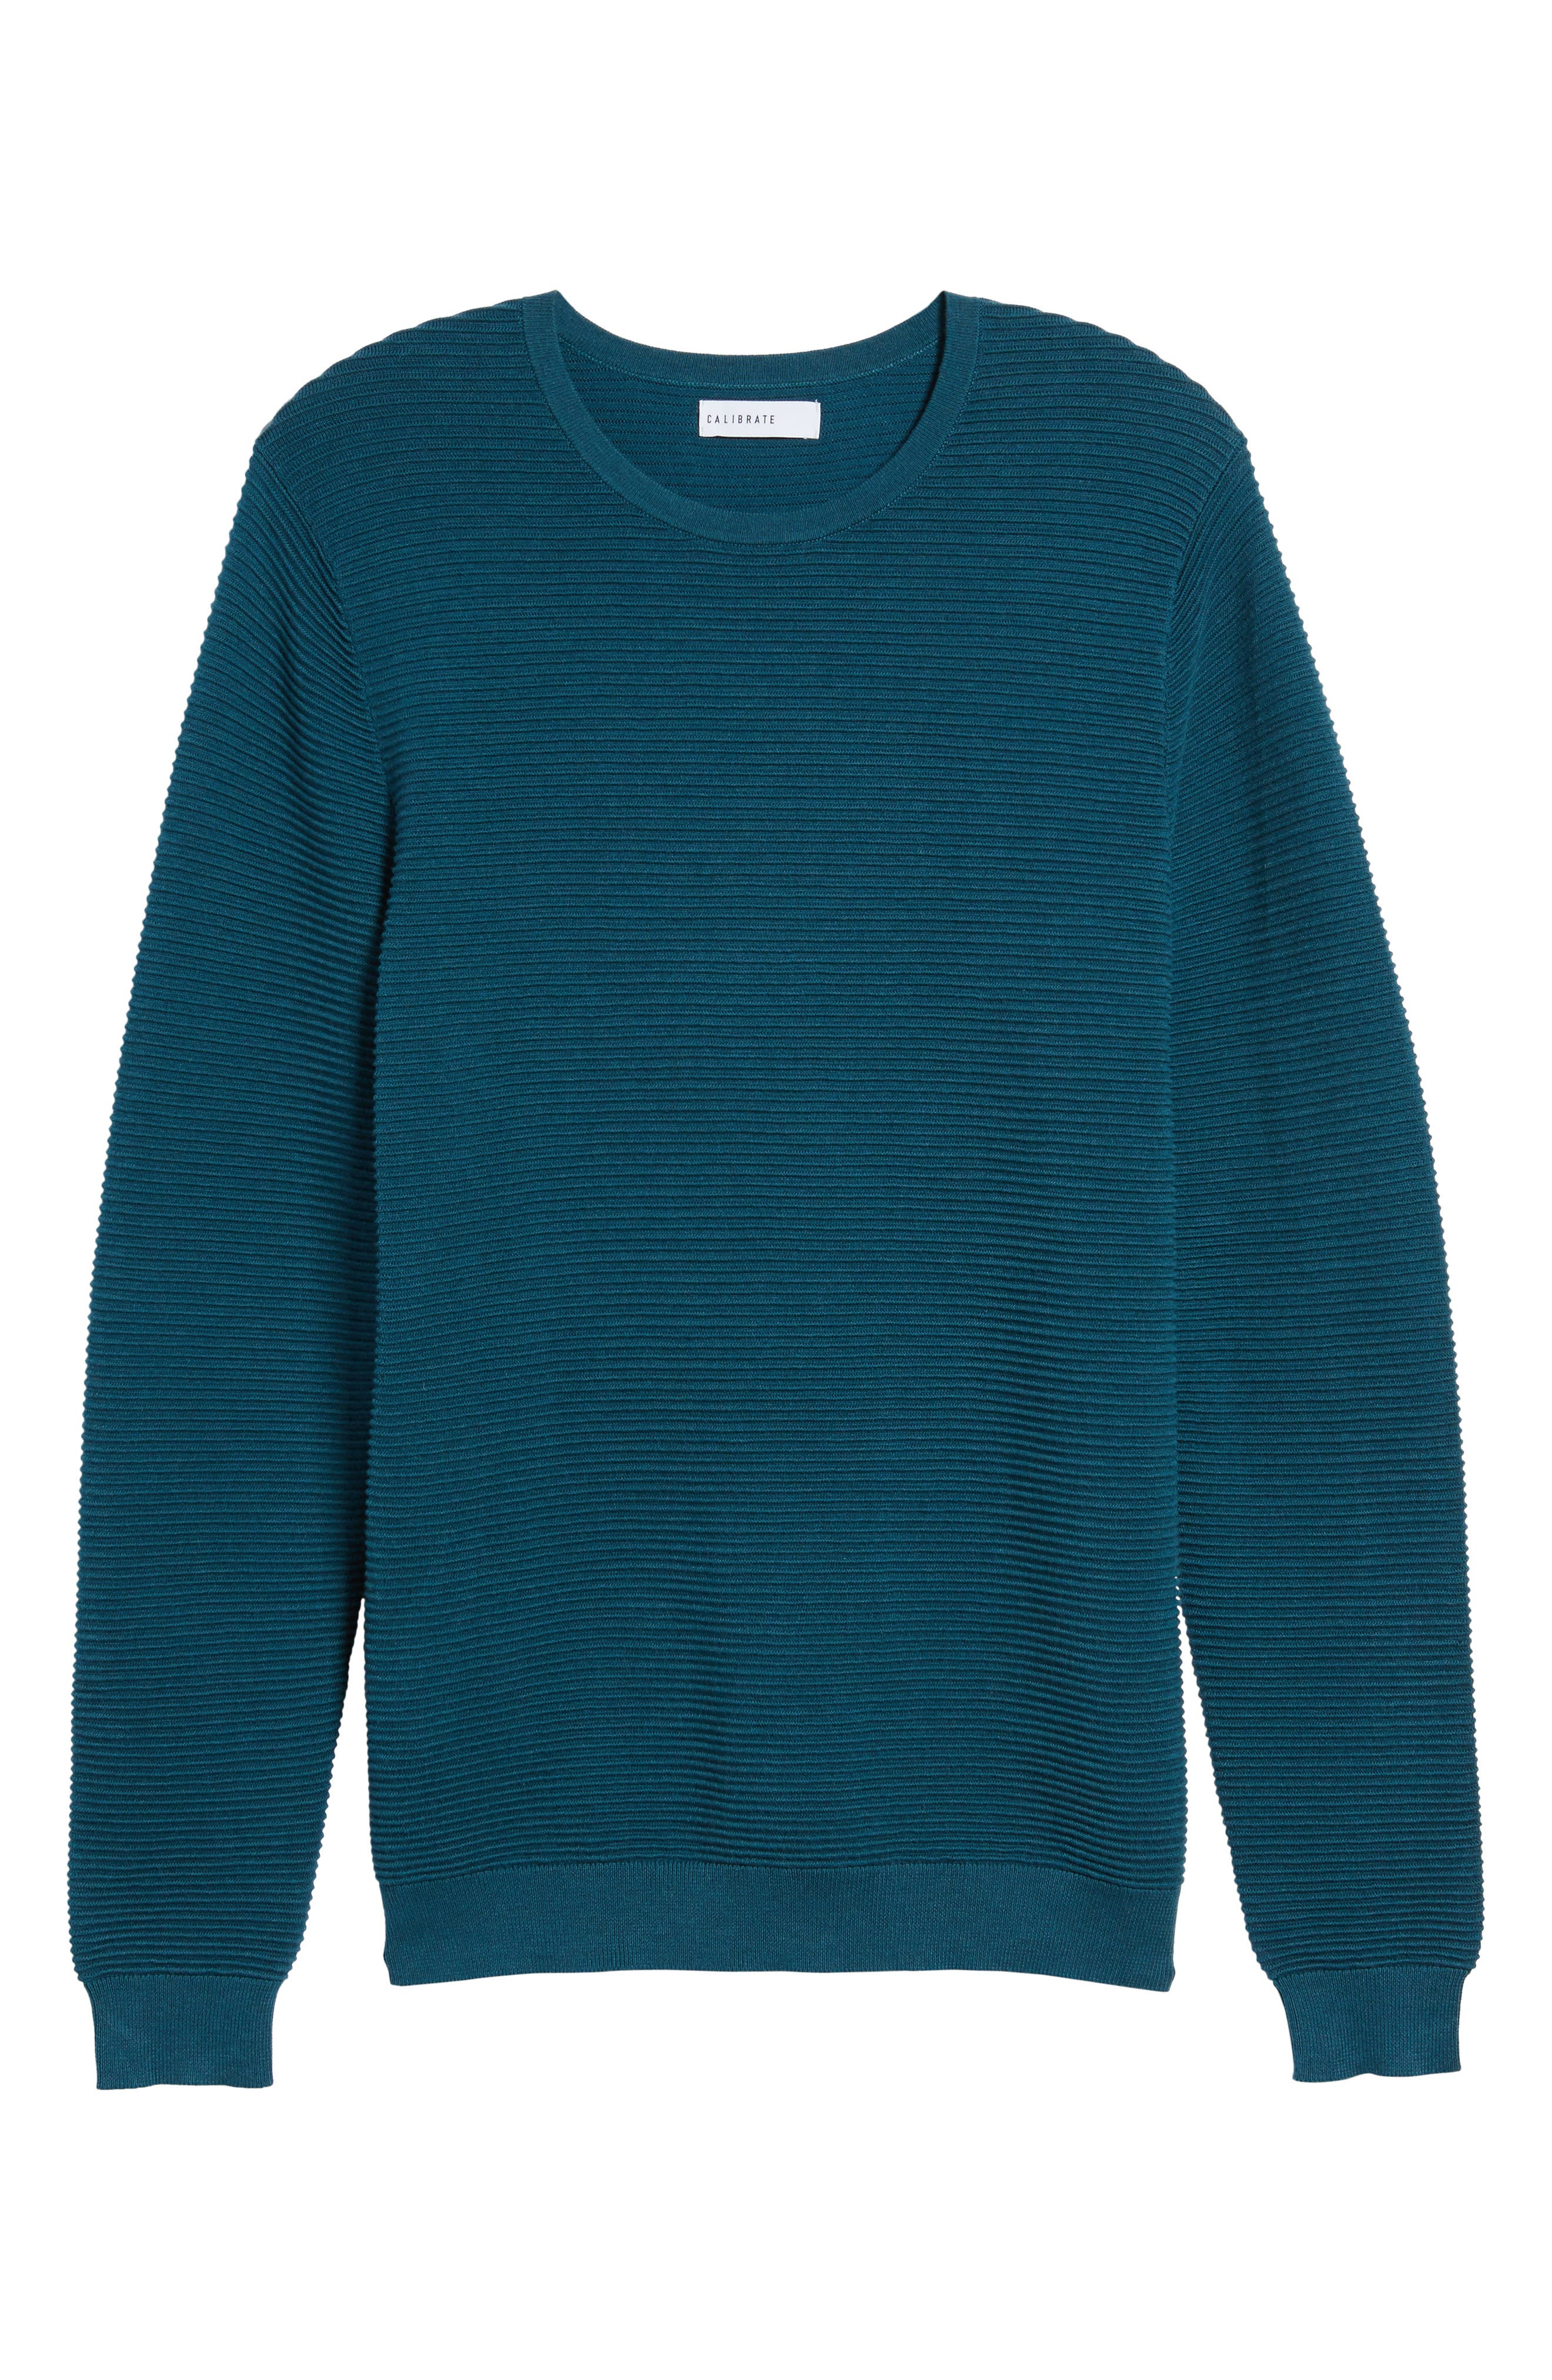 Ottoman Ribbed Crewneck Sweater,                             Alternate thumbnail 17, color,